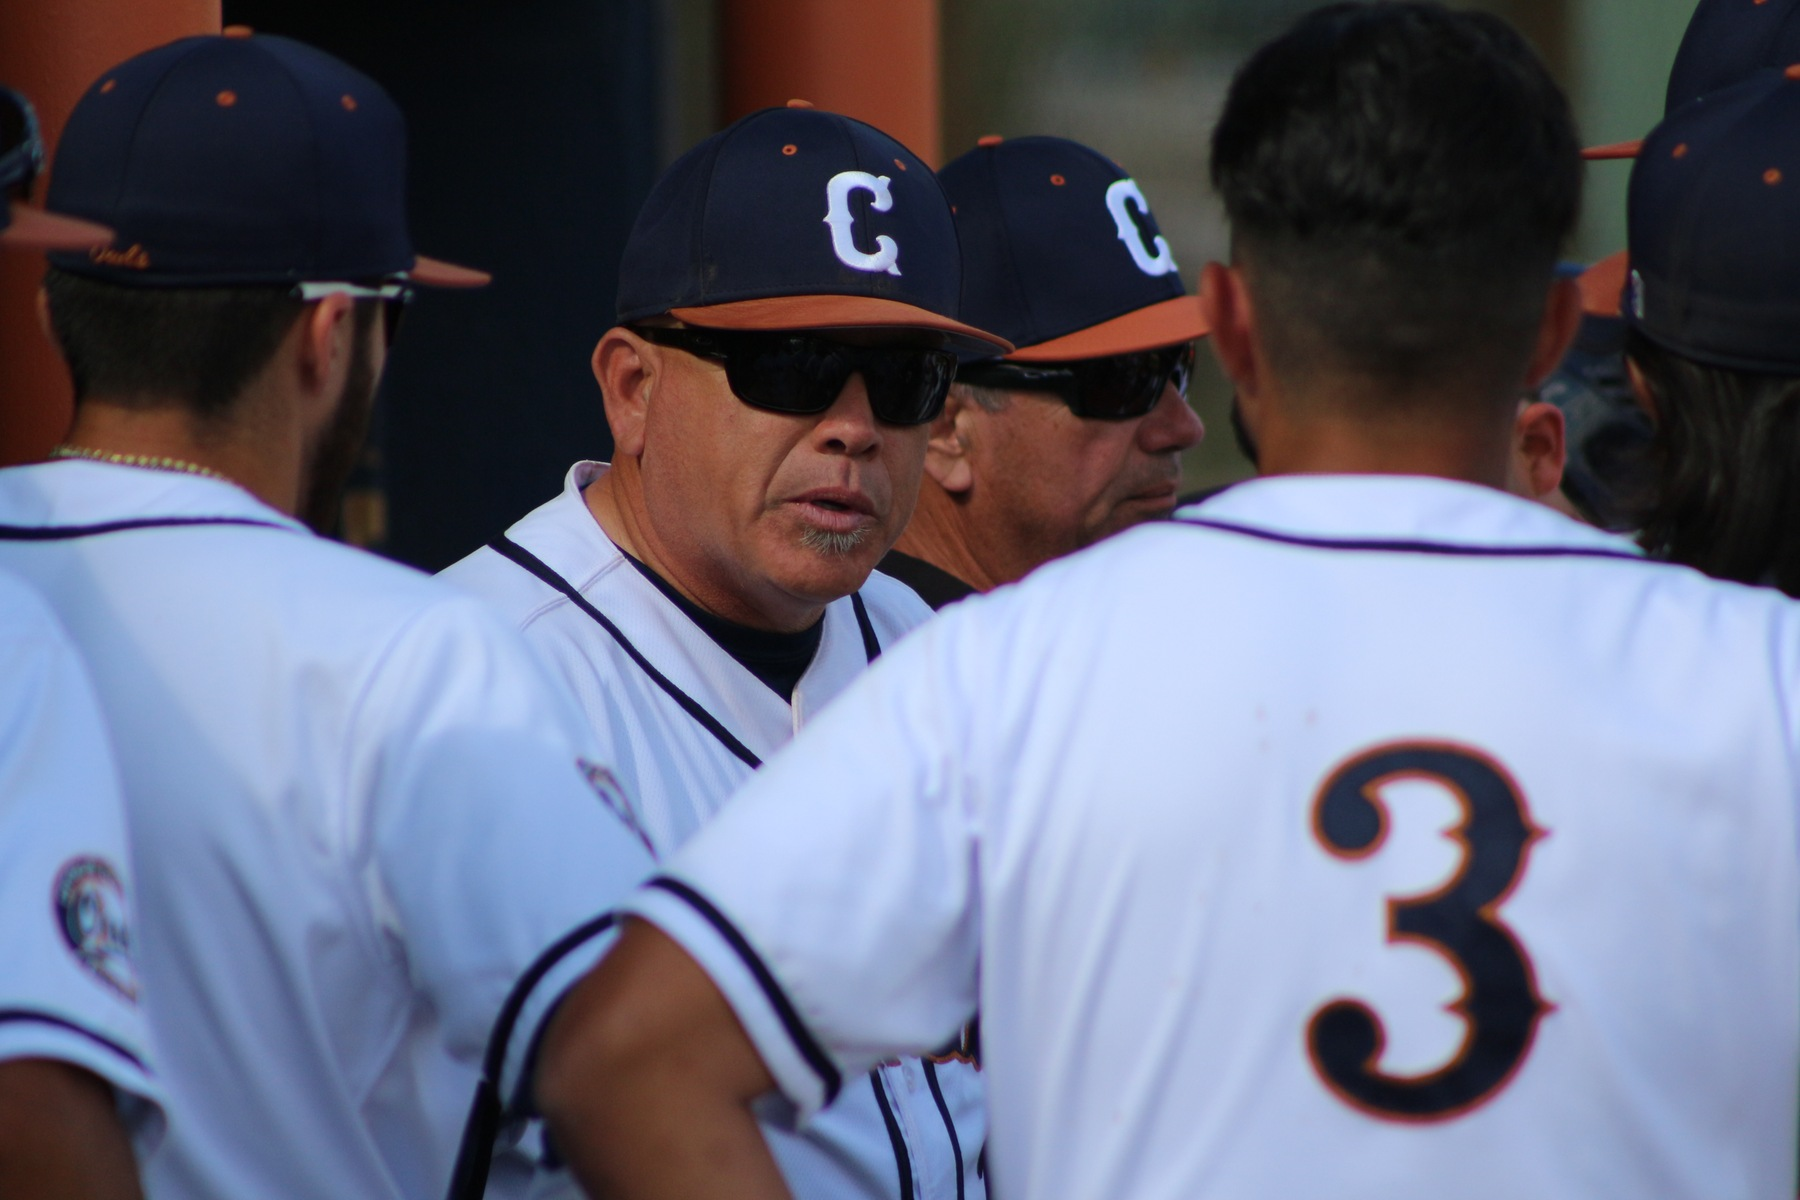 Head Coach Steve Gomez motivating his guys in the dugout.